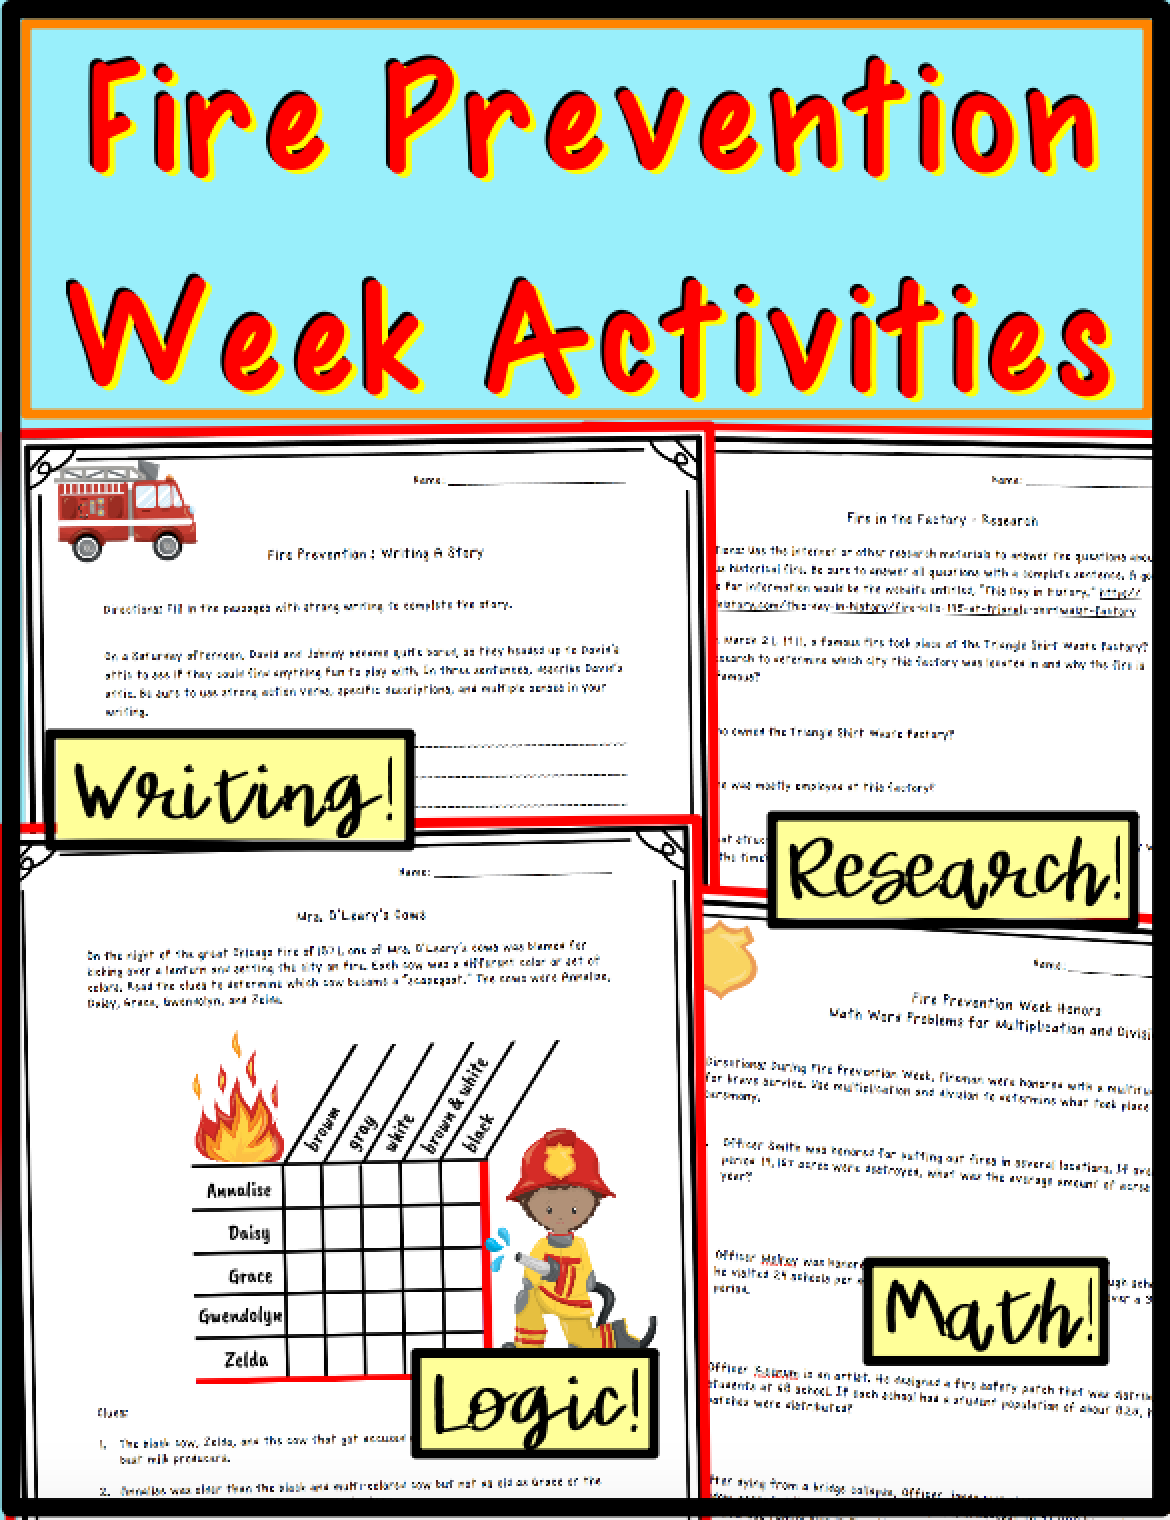 Fire Prevention Week Activities